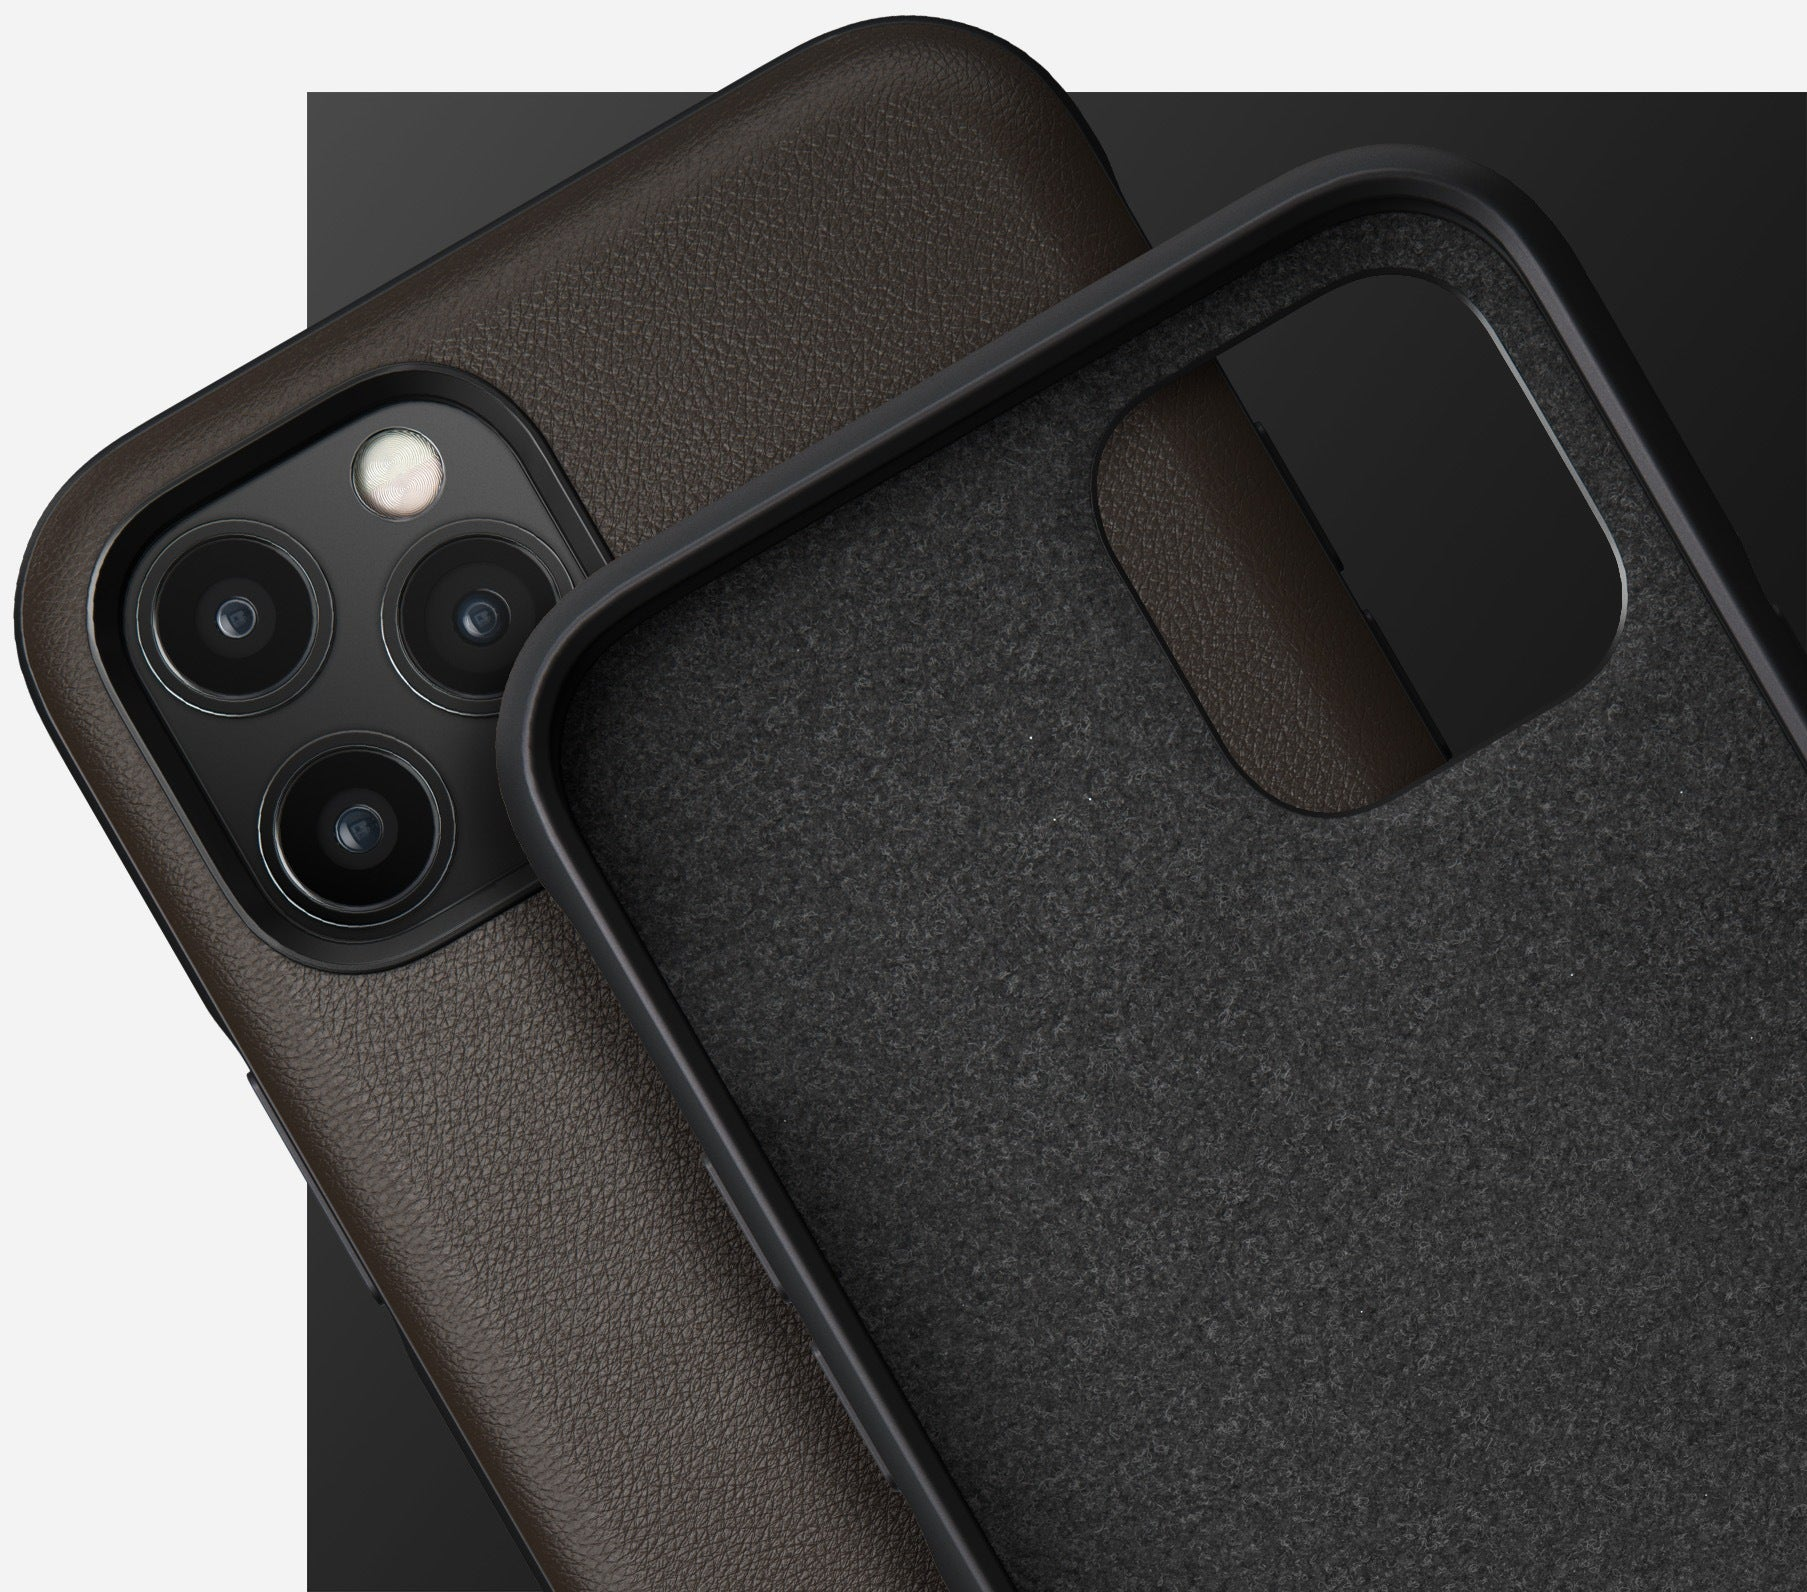 https://cdn.shopify.com/s/files/1/0384/6721/files/Feature_Bumper_Protection_-_Grey_New_87003fce-a949-4841-8d6f-4e5532afe1af.jpg?55291